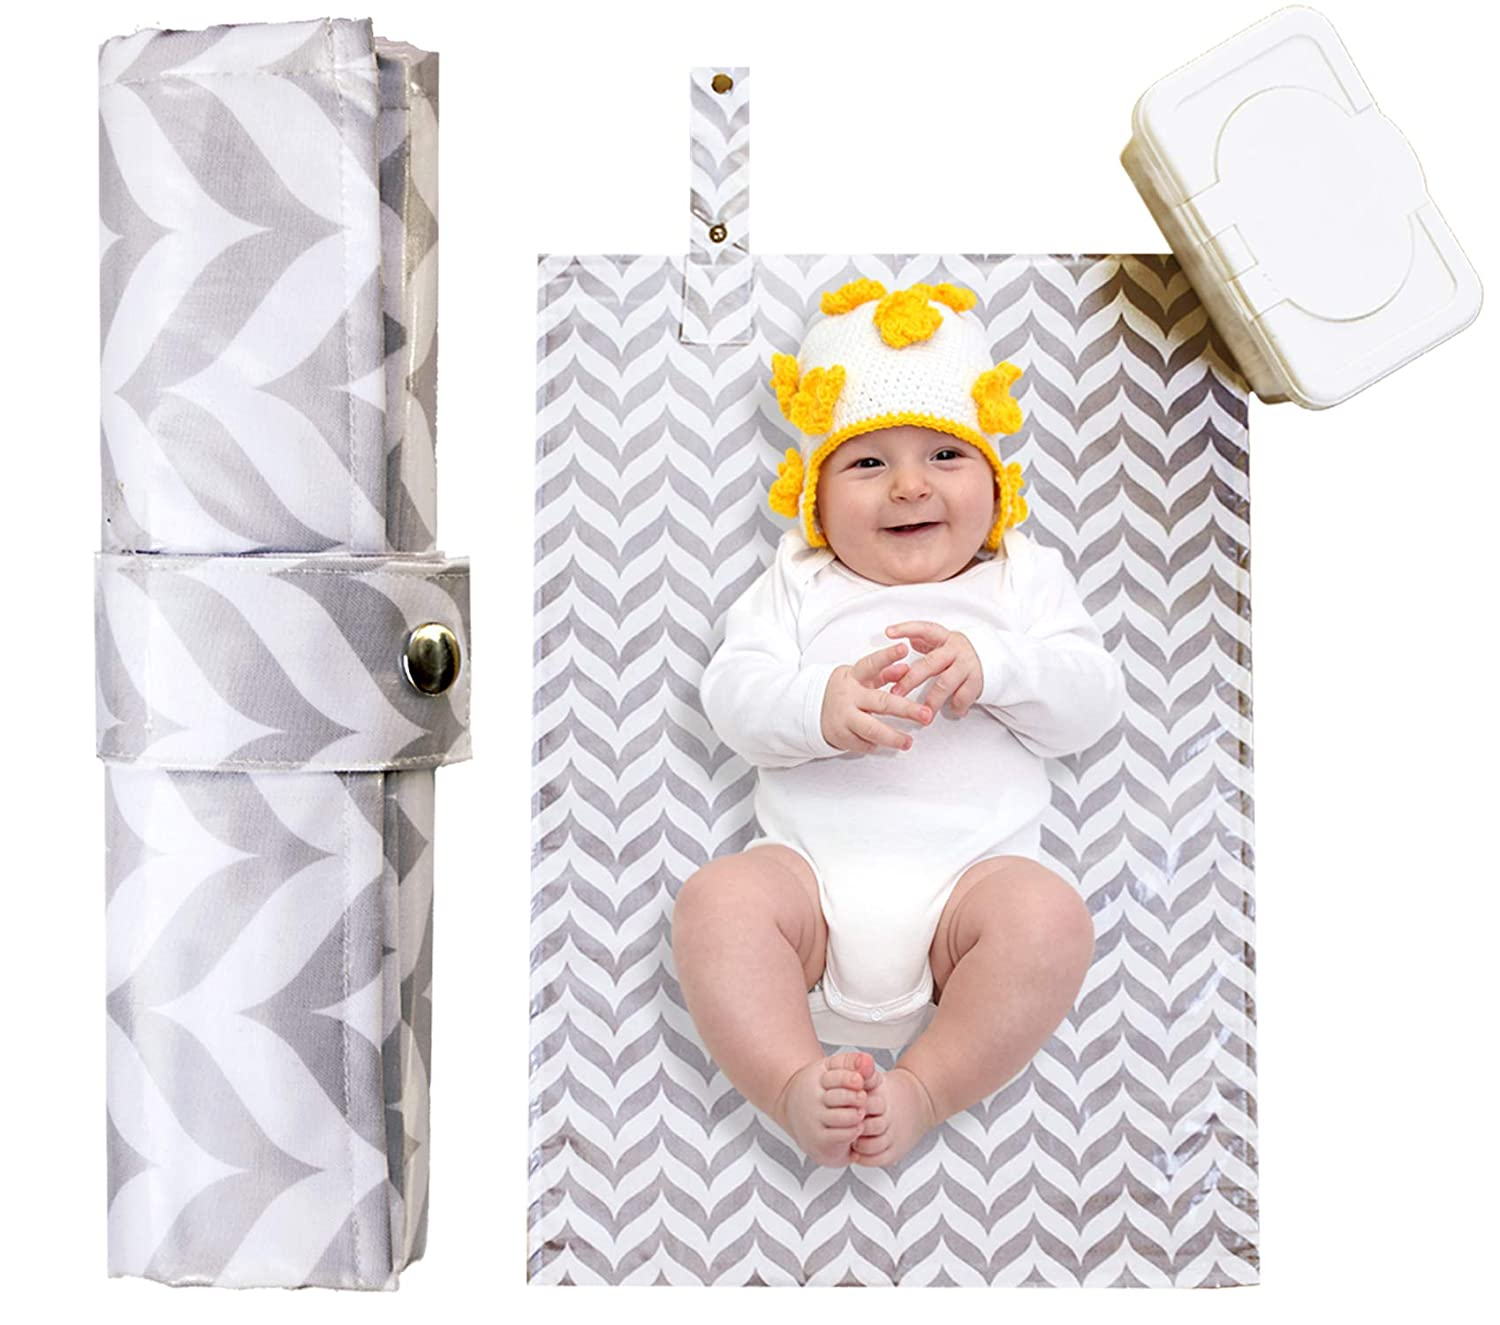 Foldable Travel Changing Mat for Infants Newborns Waterproof Baby Changing Pad Rabbits Face Portable Diaper Bag Mat